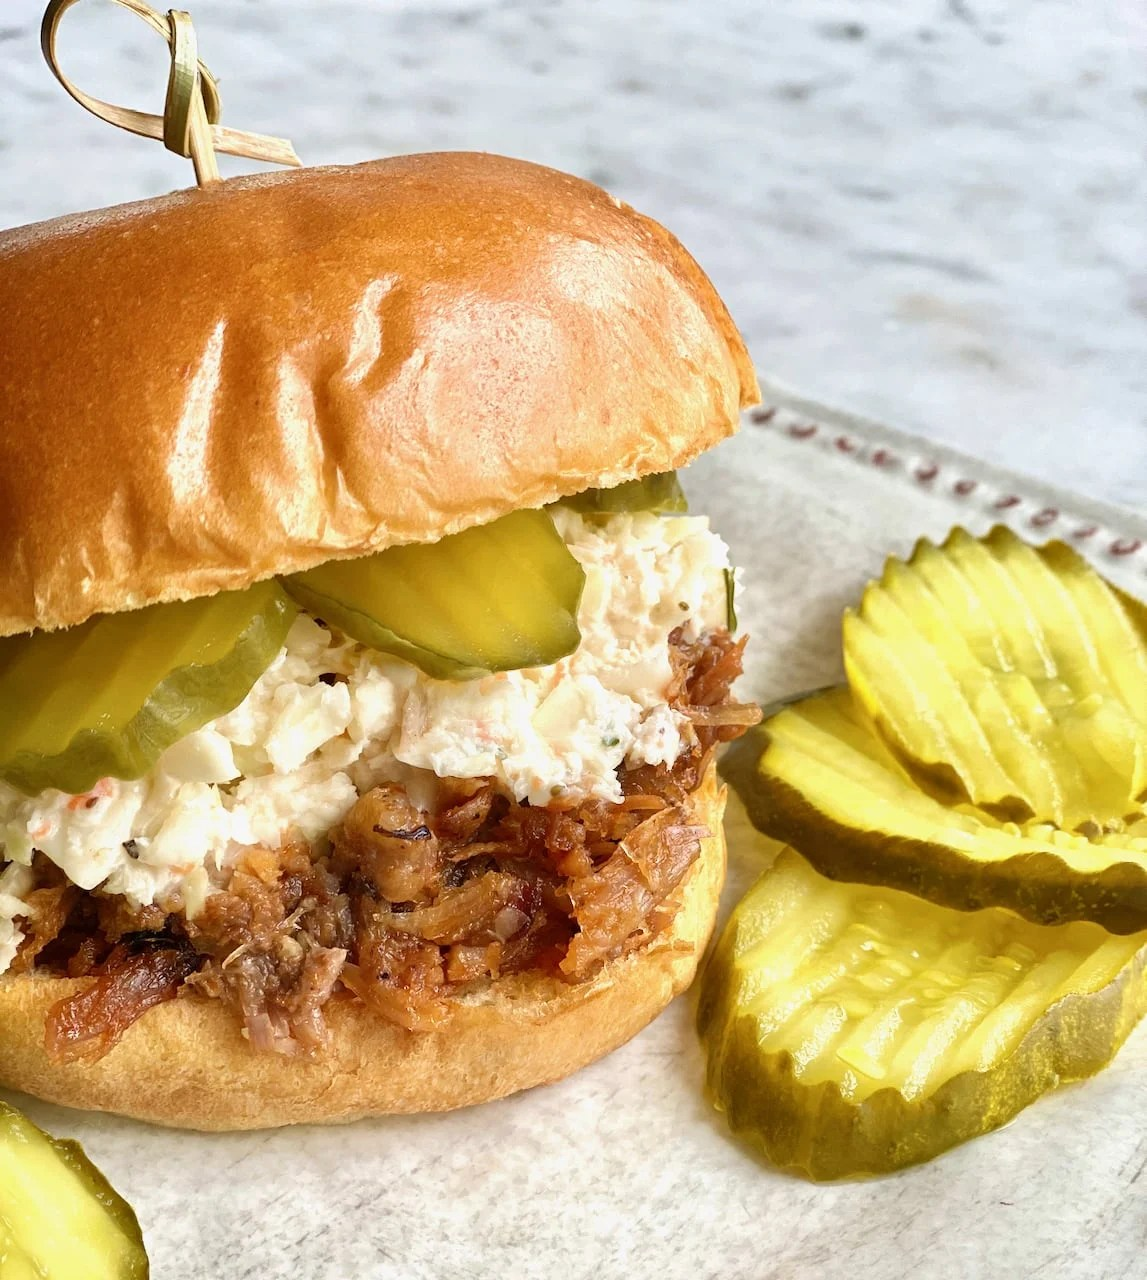 pulled pork barbecue with coleslaw and pickles on a brioche bun